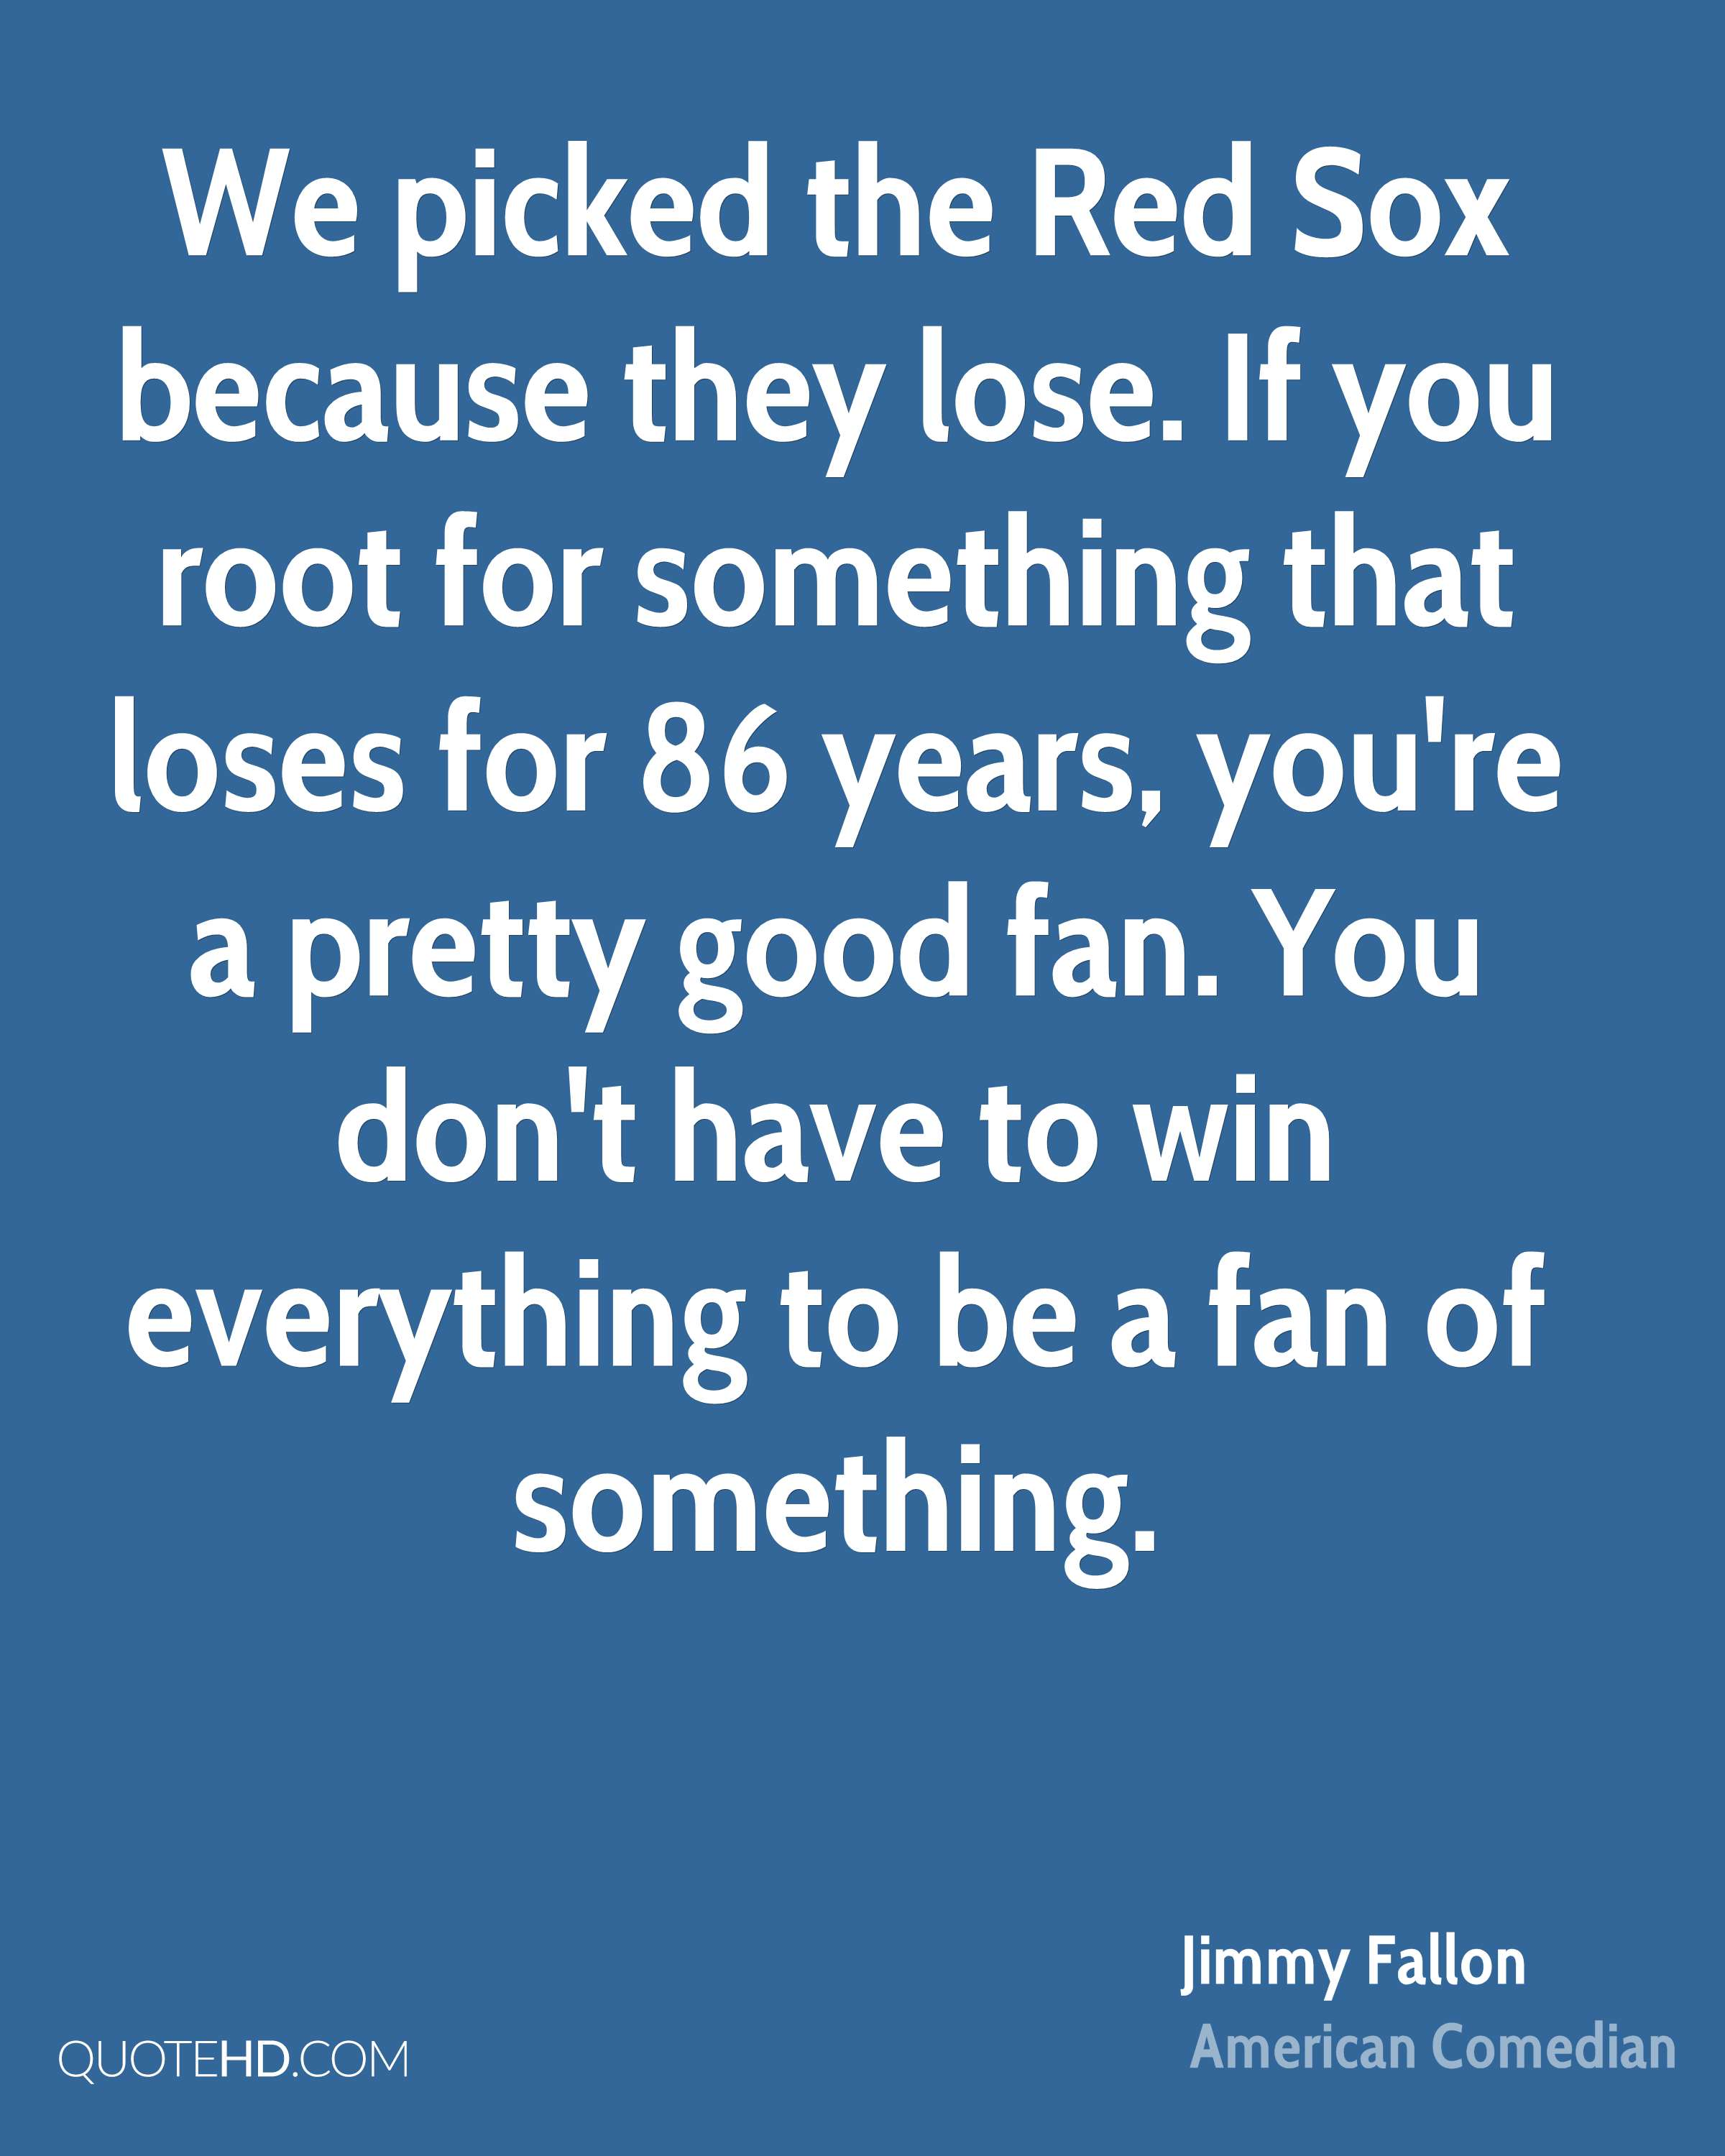 We picked the Red Sox because they lose. If you root for something that loses for 86 years, you're a pretty good fan. You don't have to win everything to be a fan of something.